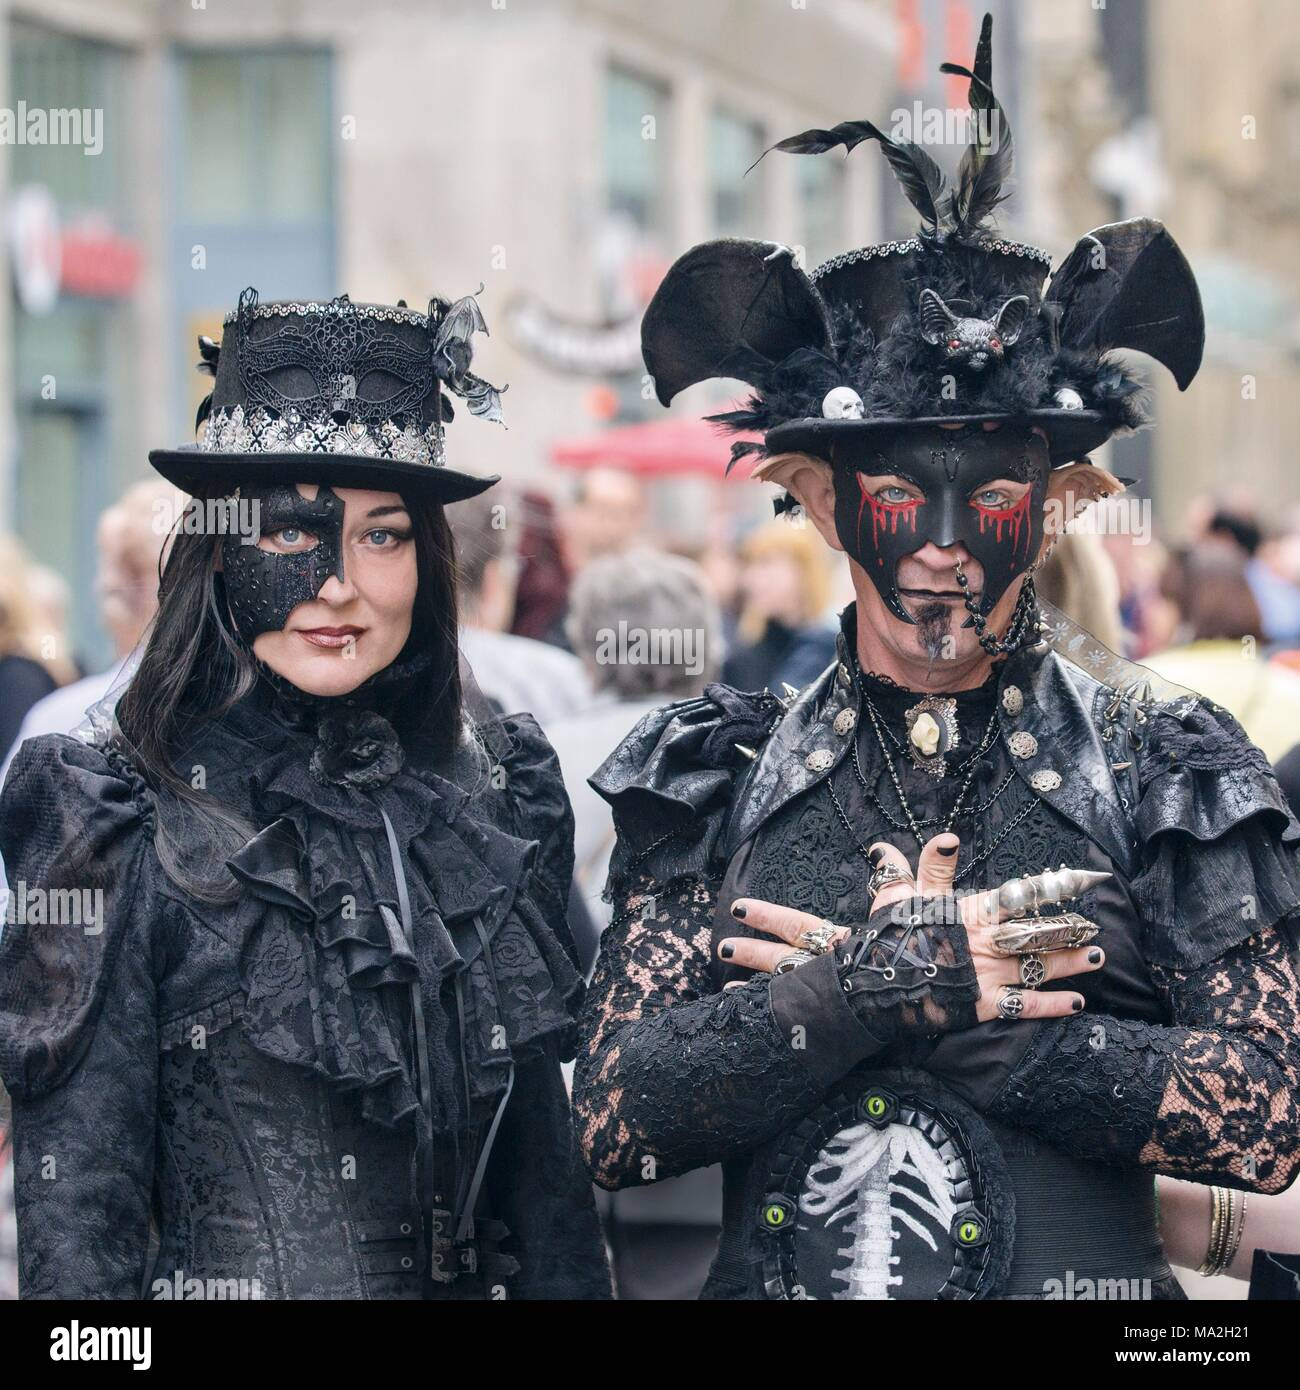 Wave-Gotik-Festival: a bizarrely dressed couple in Leipzig - Stock Image